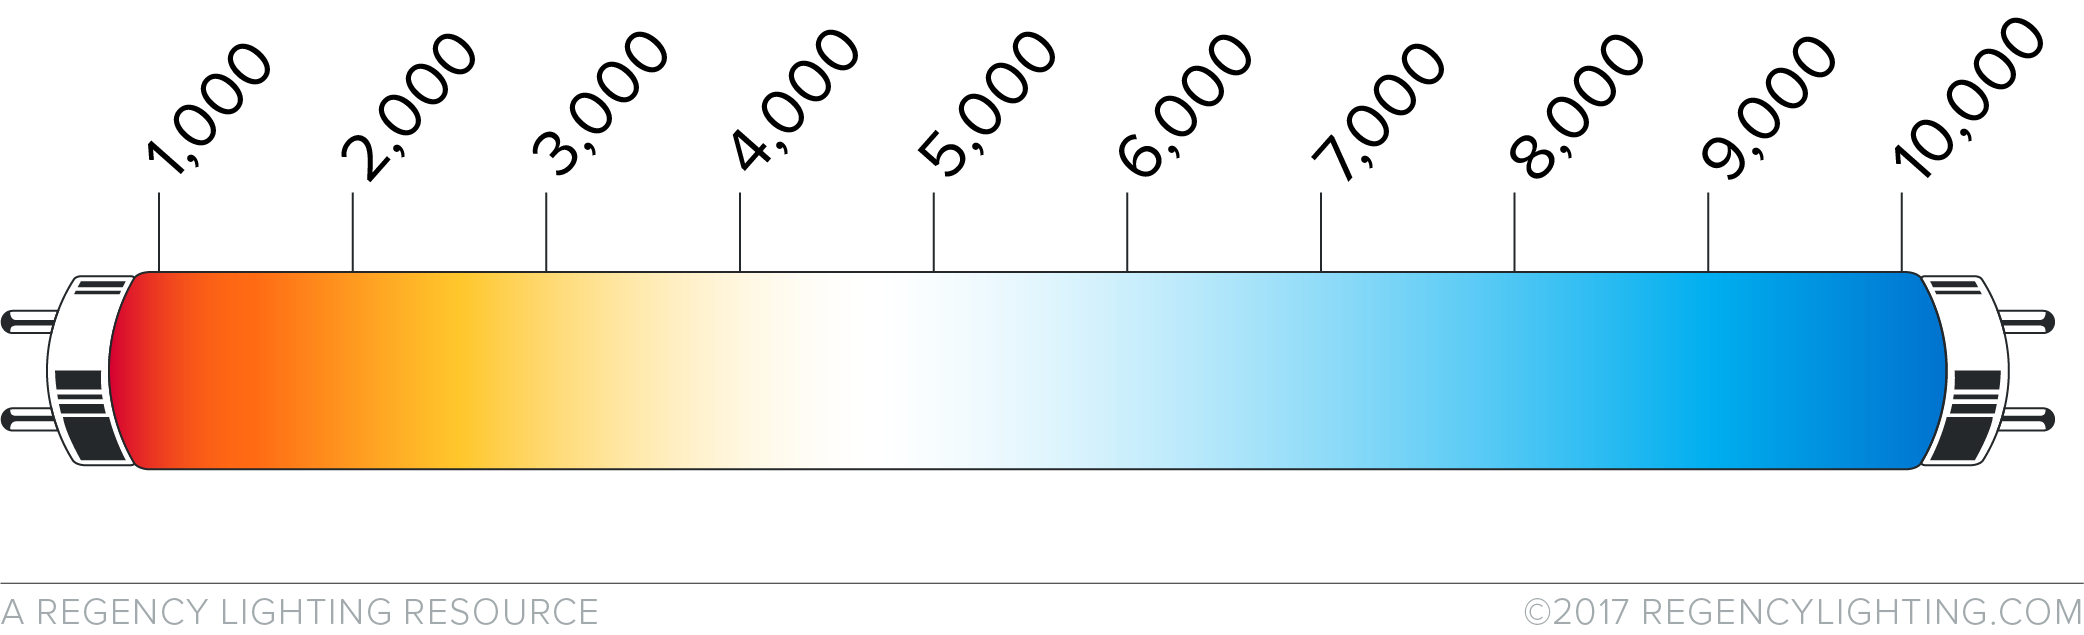 Kelvin-Scale-Color-Temperature-Horiz-R